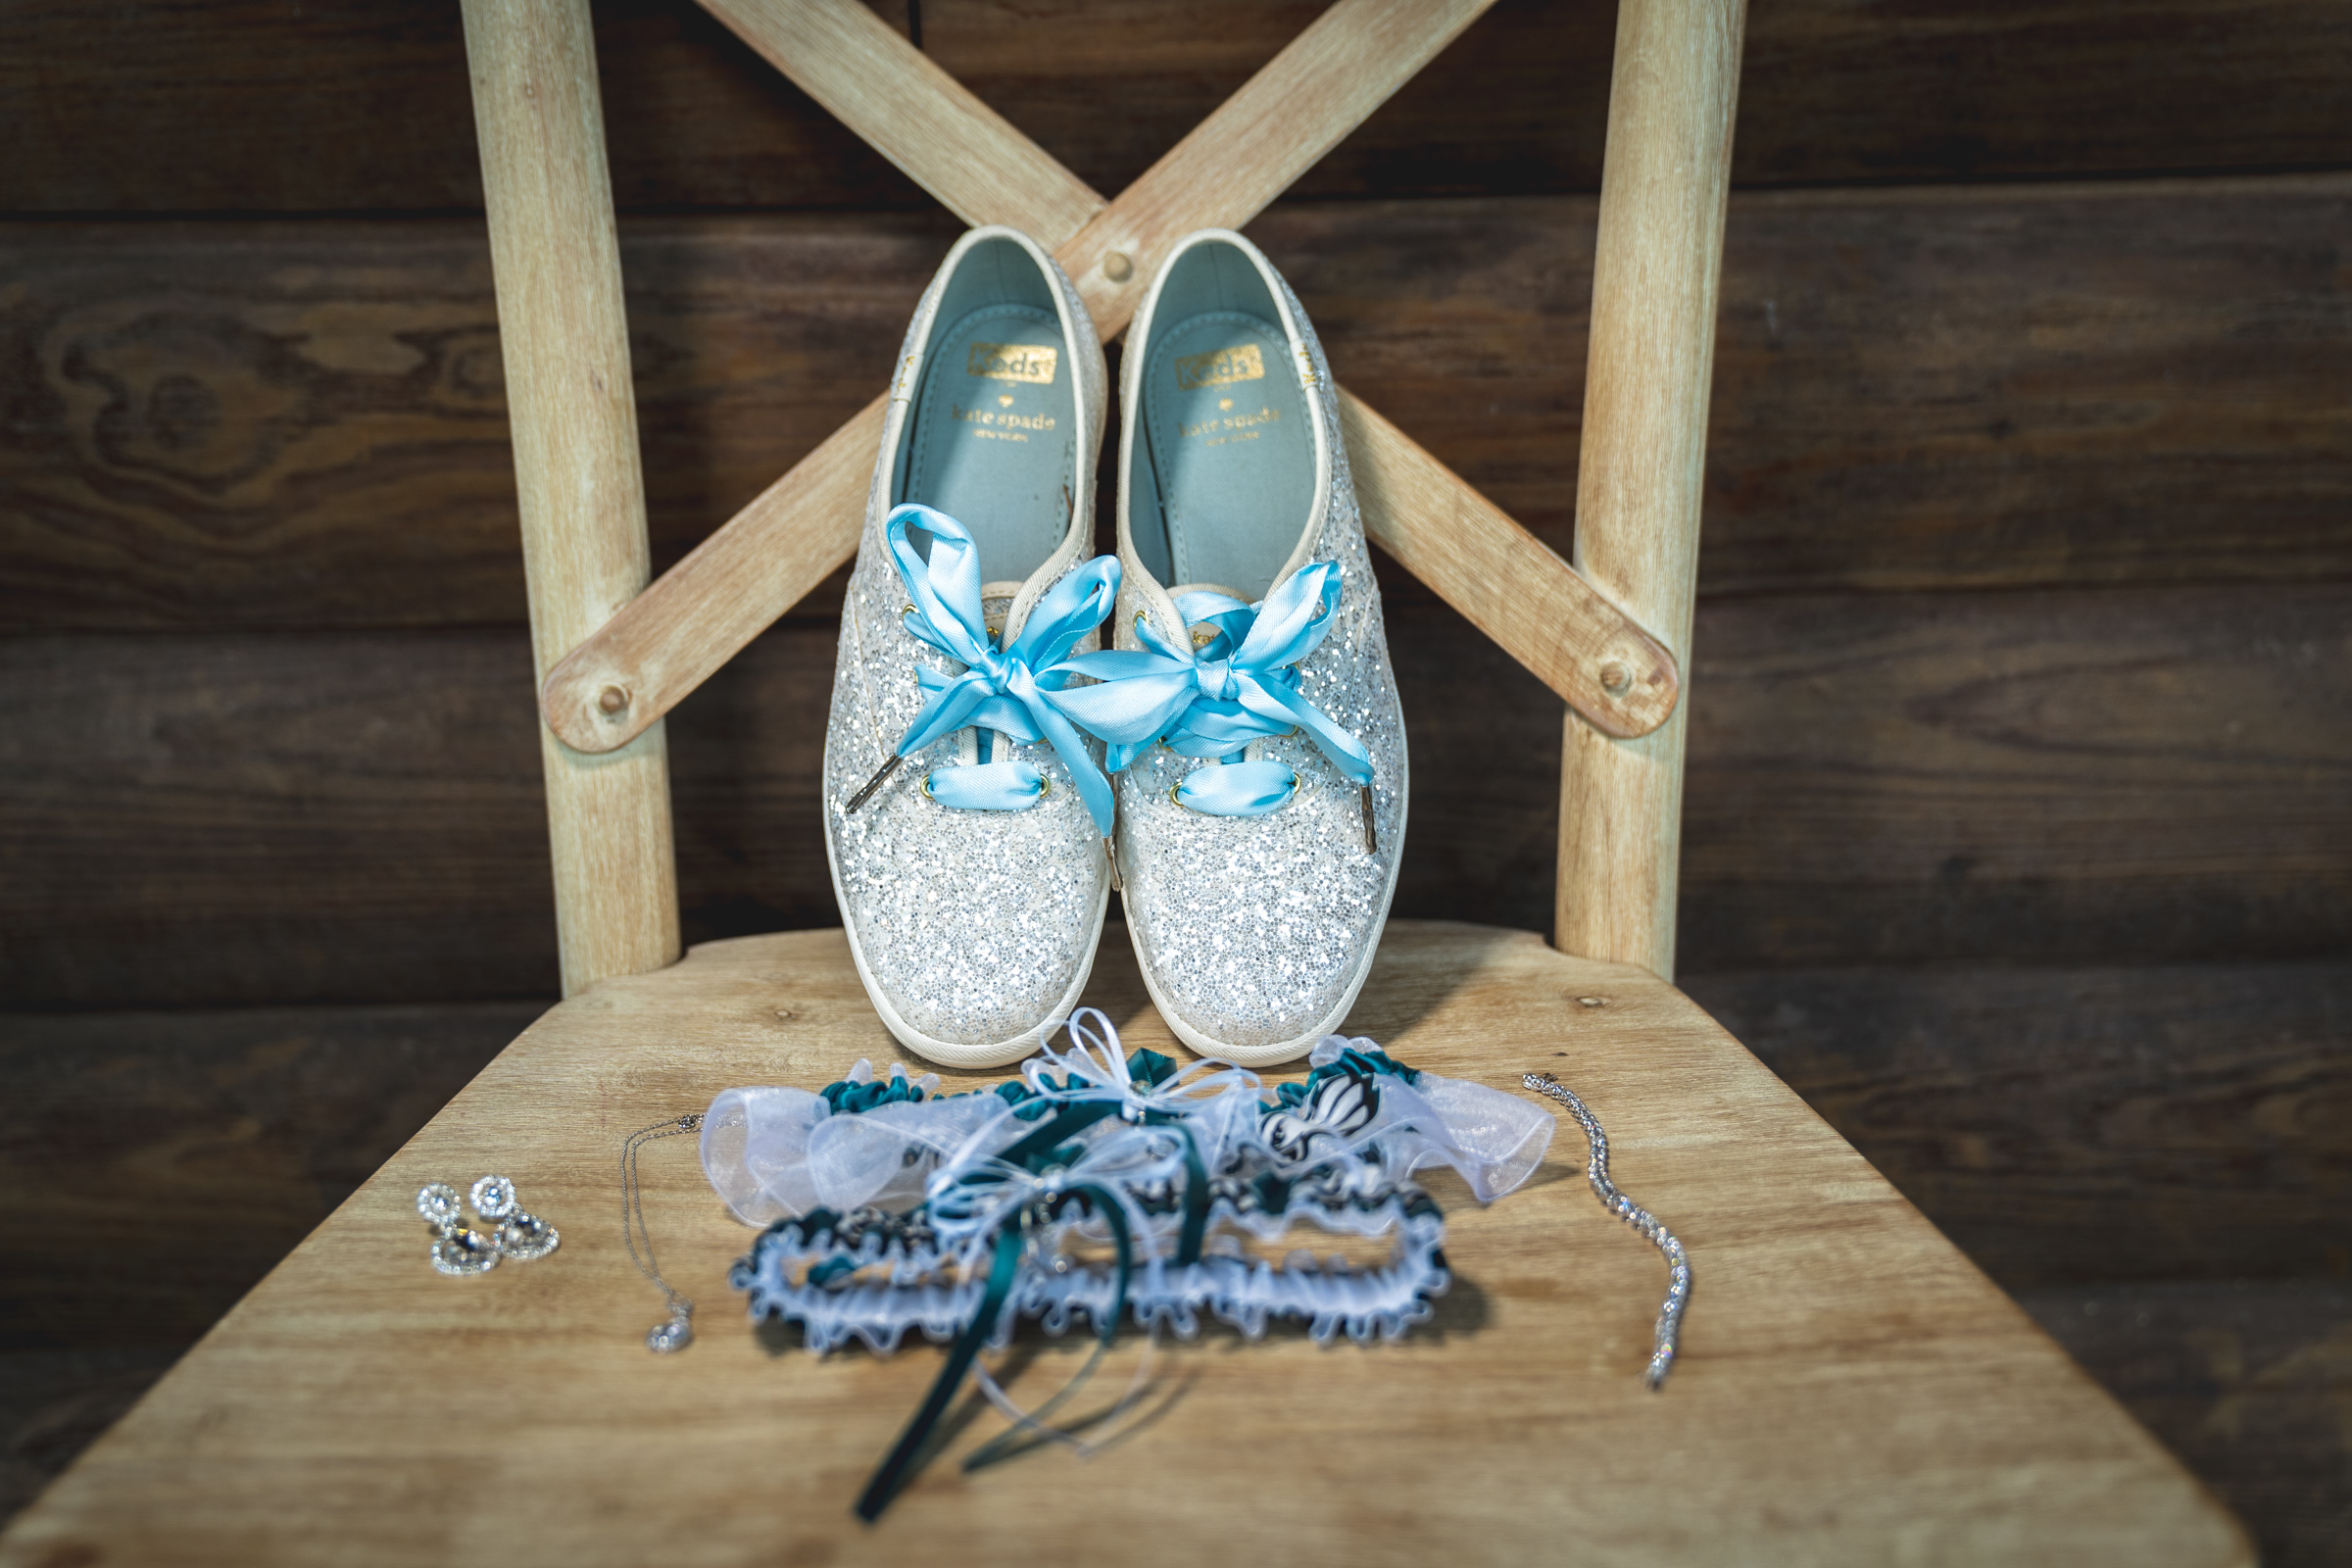 shoes-garter-details-wedding-ideas.jpg